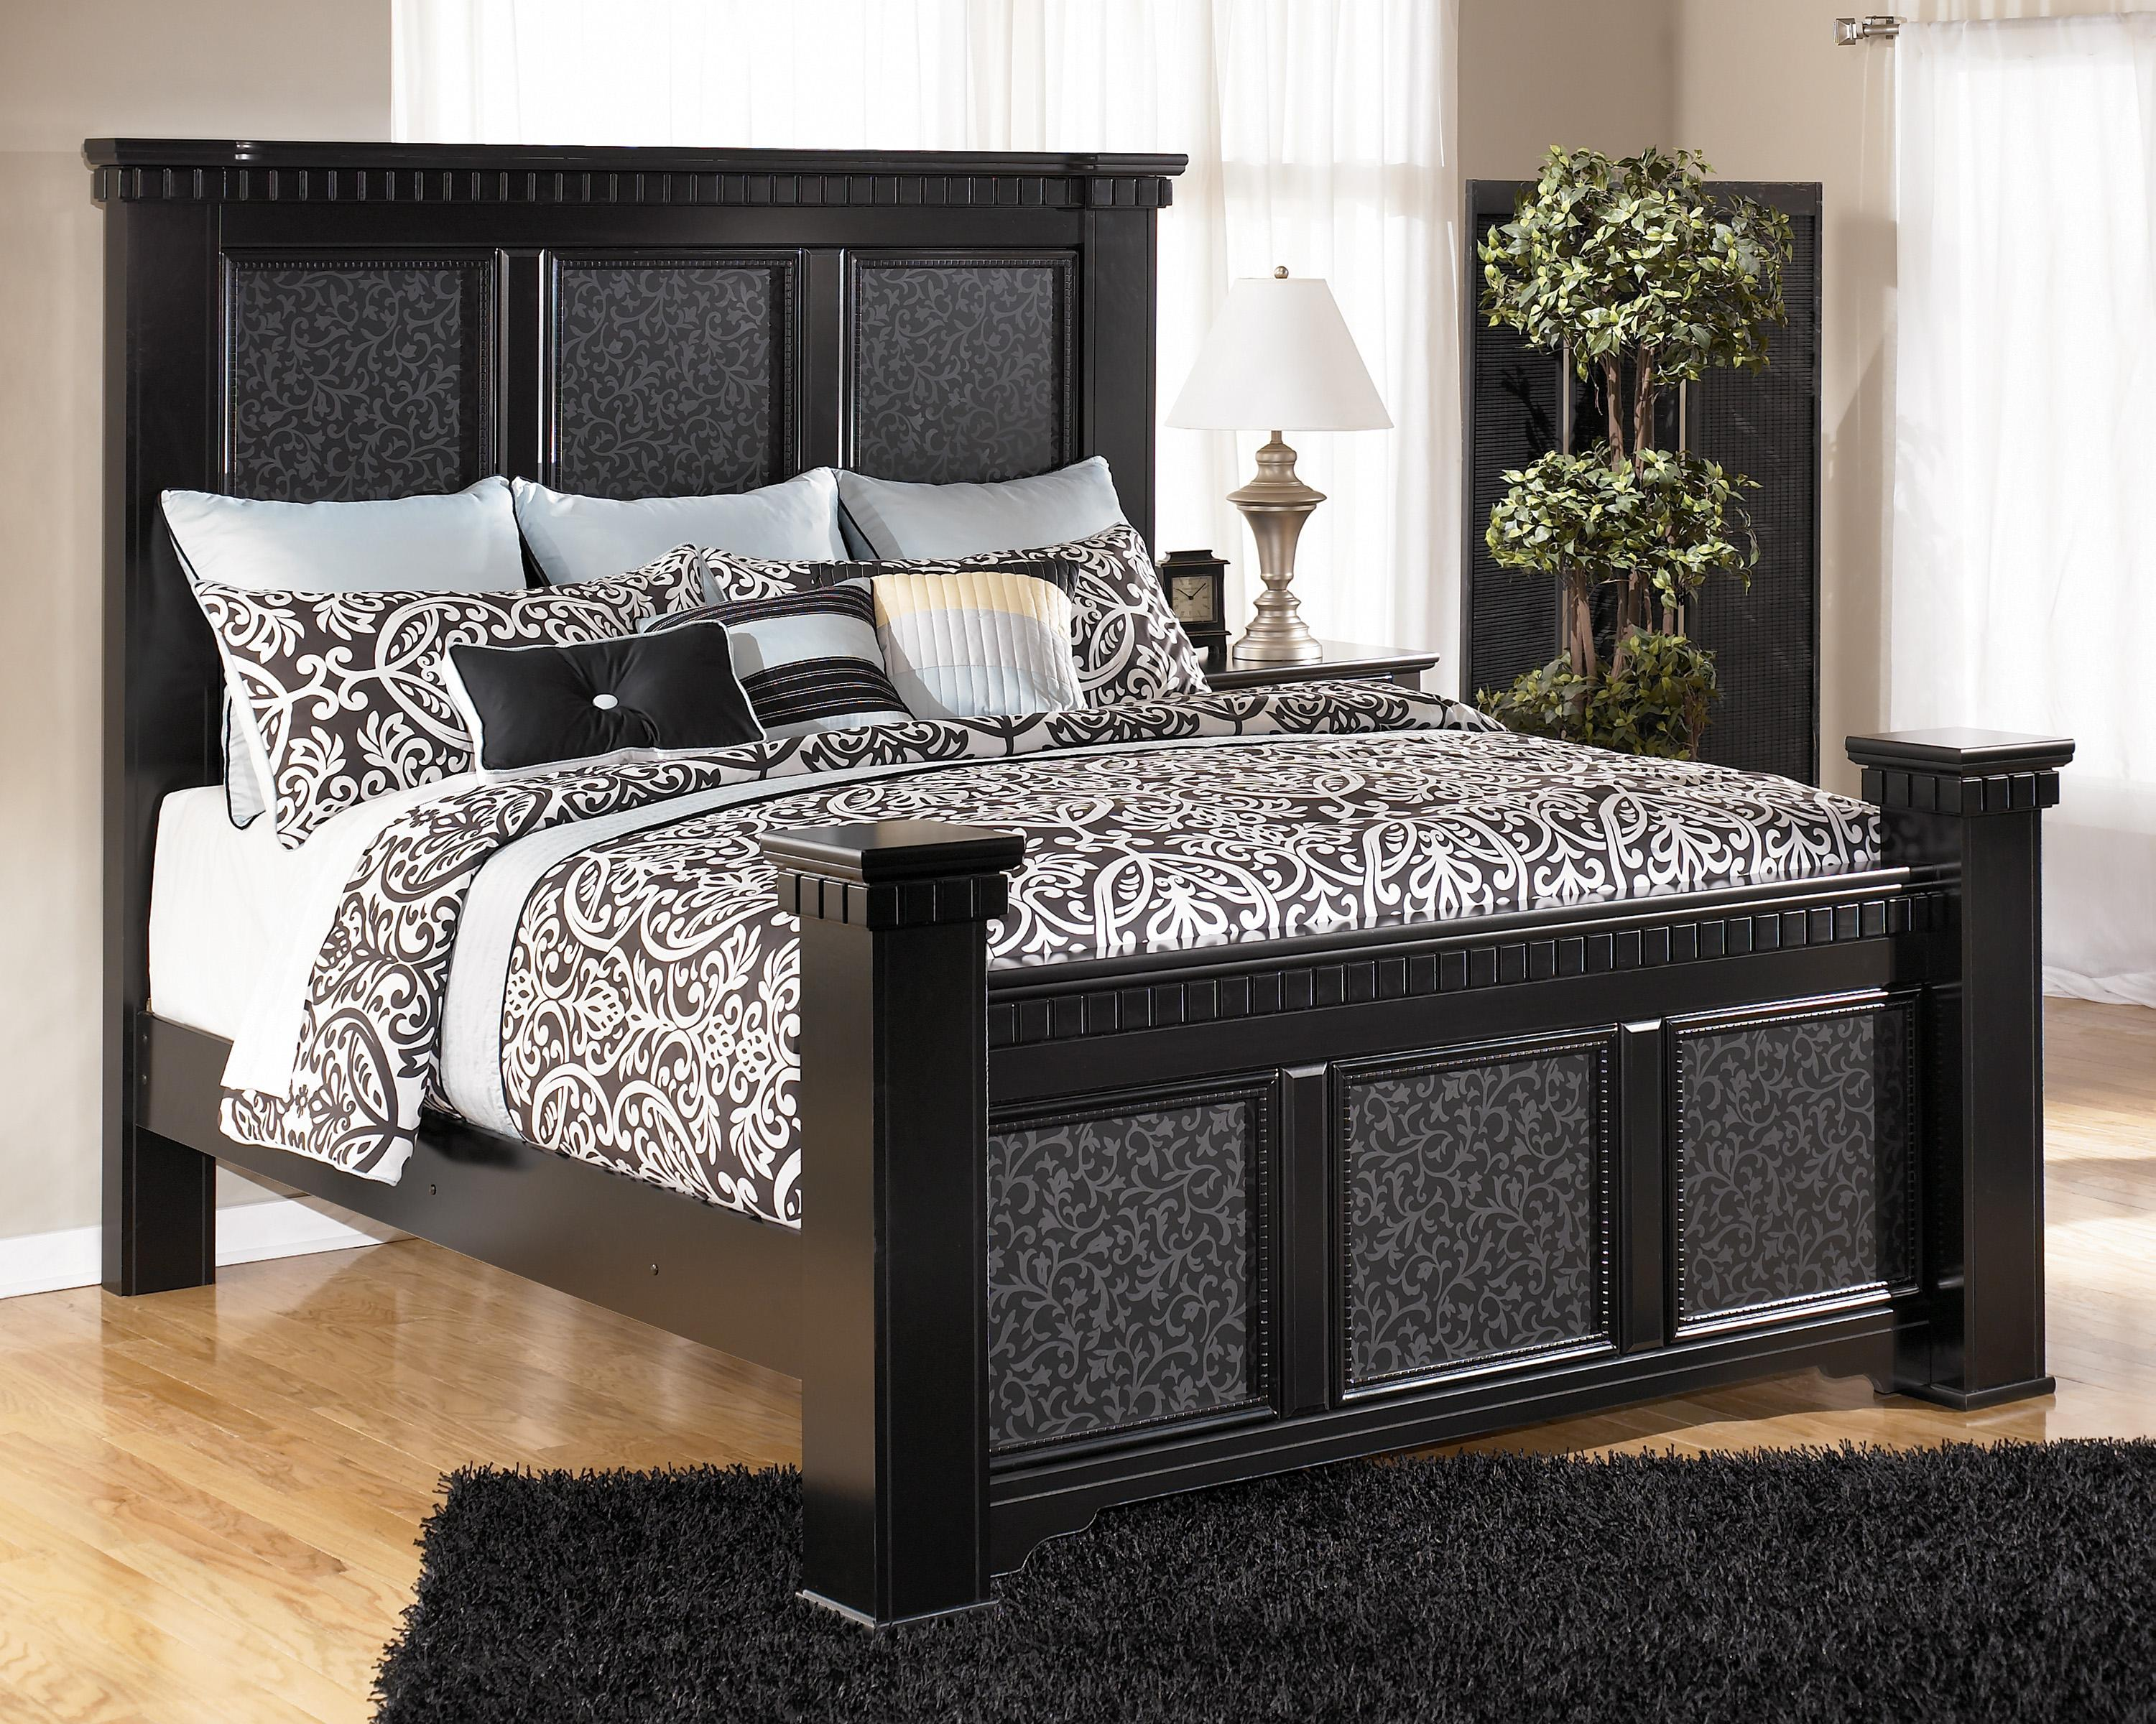 Signature Design by Ashley Cavallino King Mansion Poster Bed - Item Number: B291-158+166+99